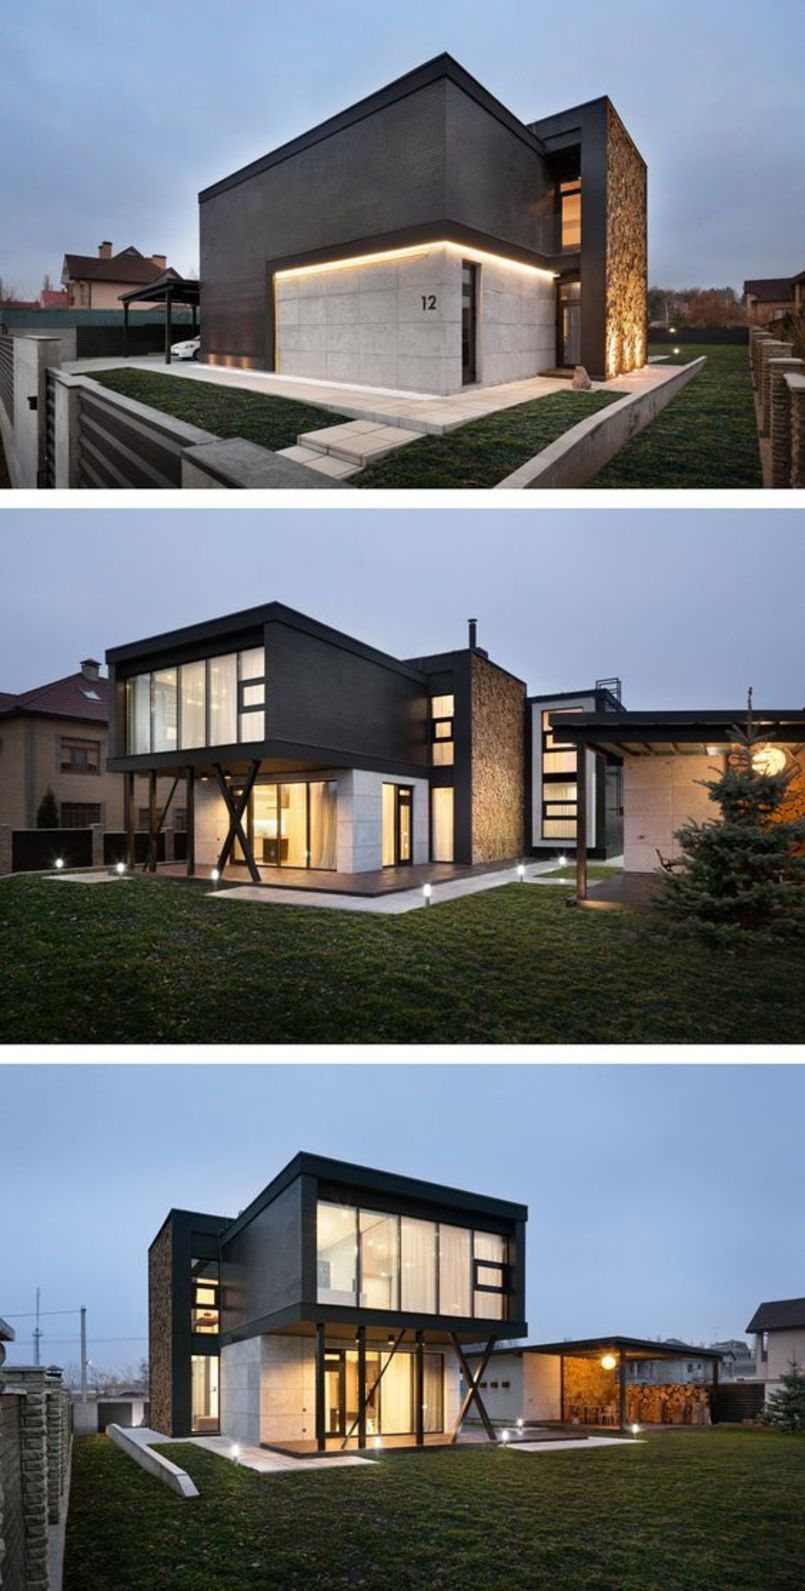 The Azumi, A Japanese Zen-Style Home By Webb & Brown-Neaves